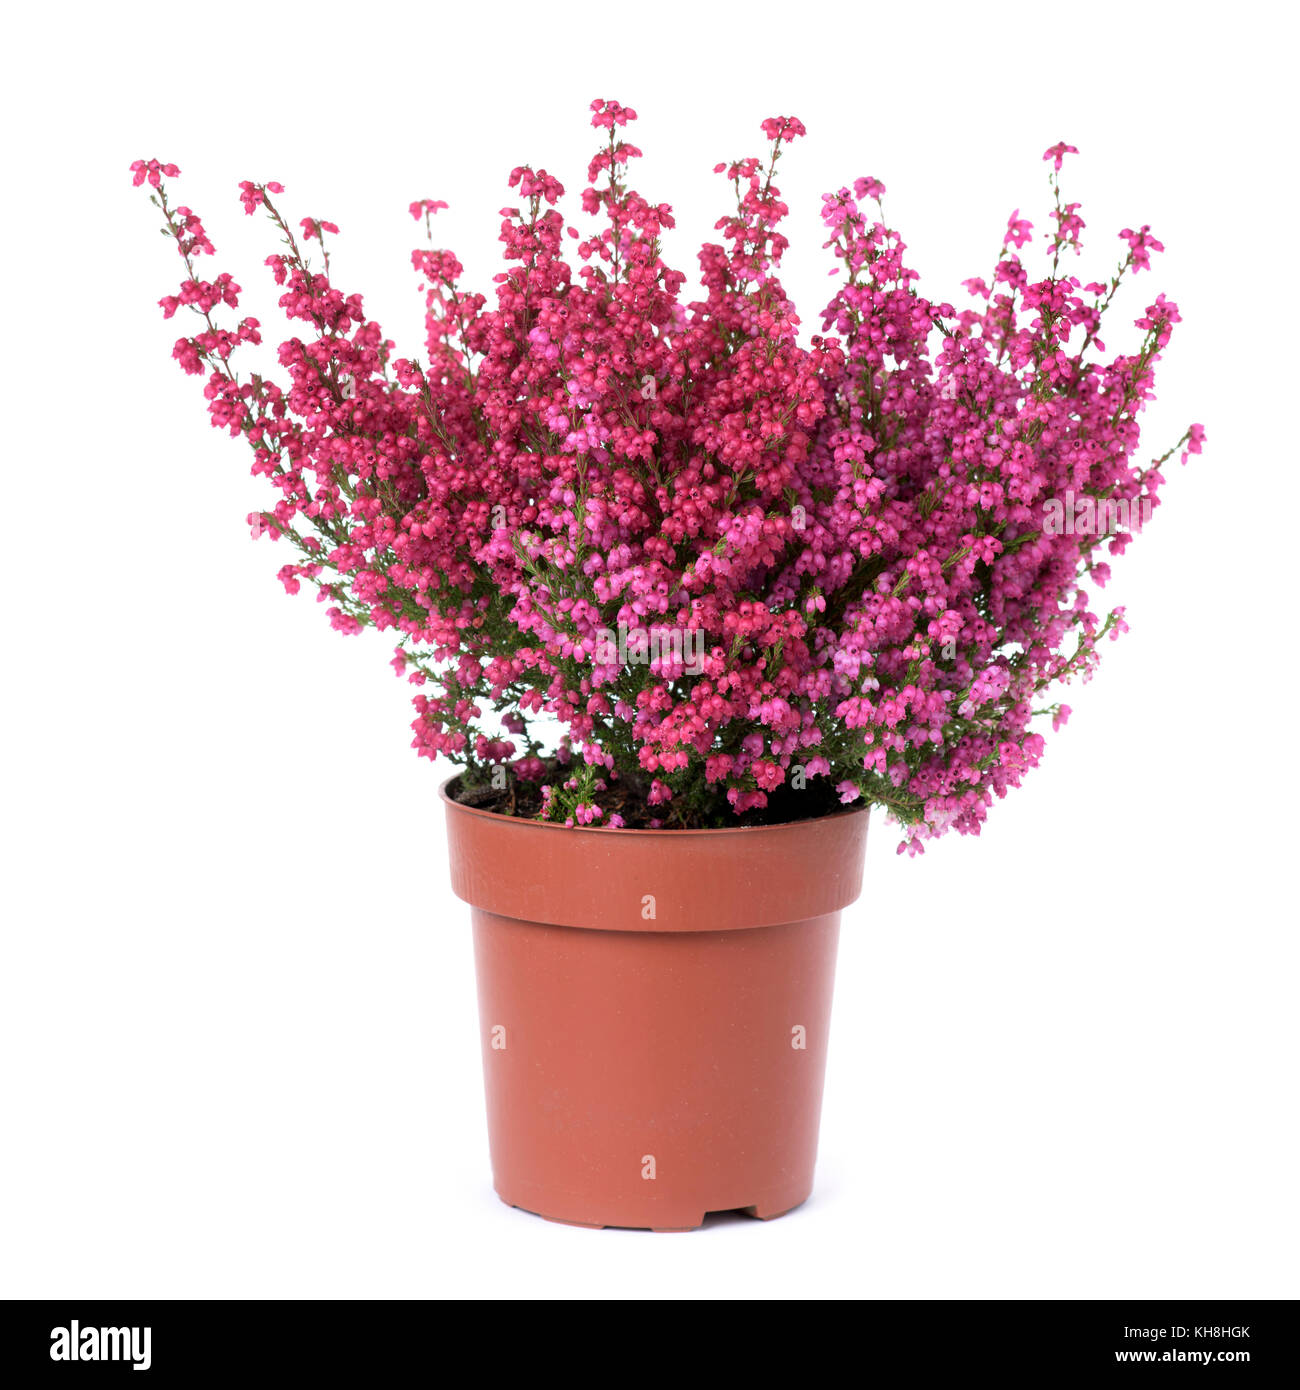 Pink Bell Flowers Stock Photos & Pink Bell Flowers Stock Images - Alamy